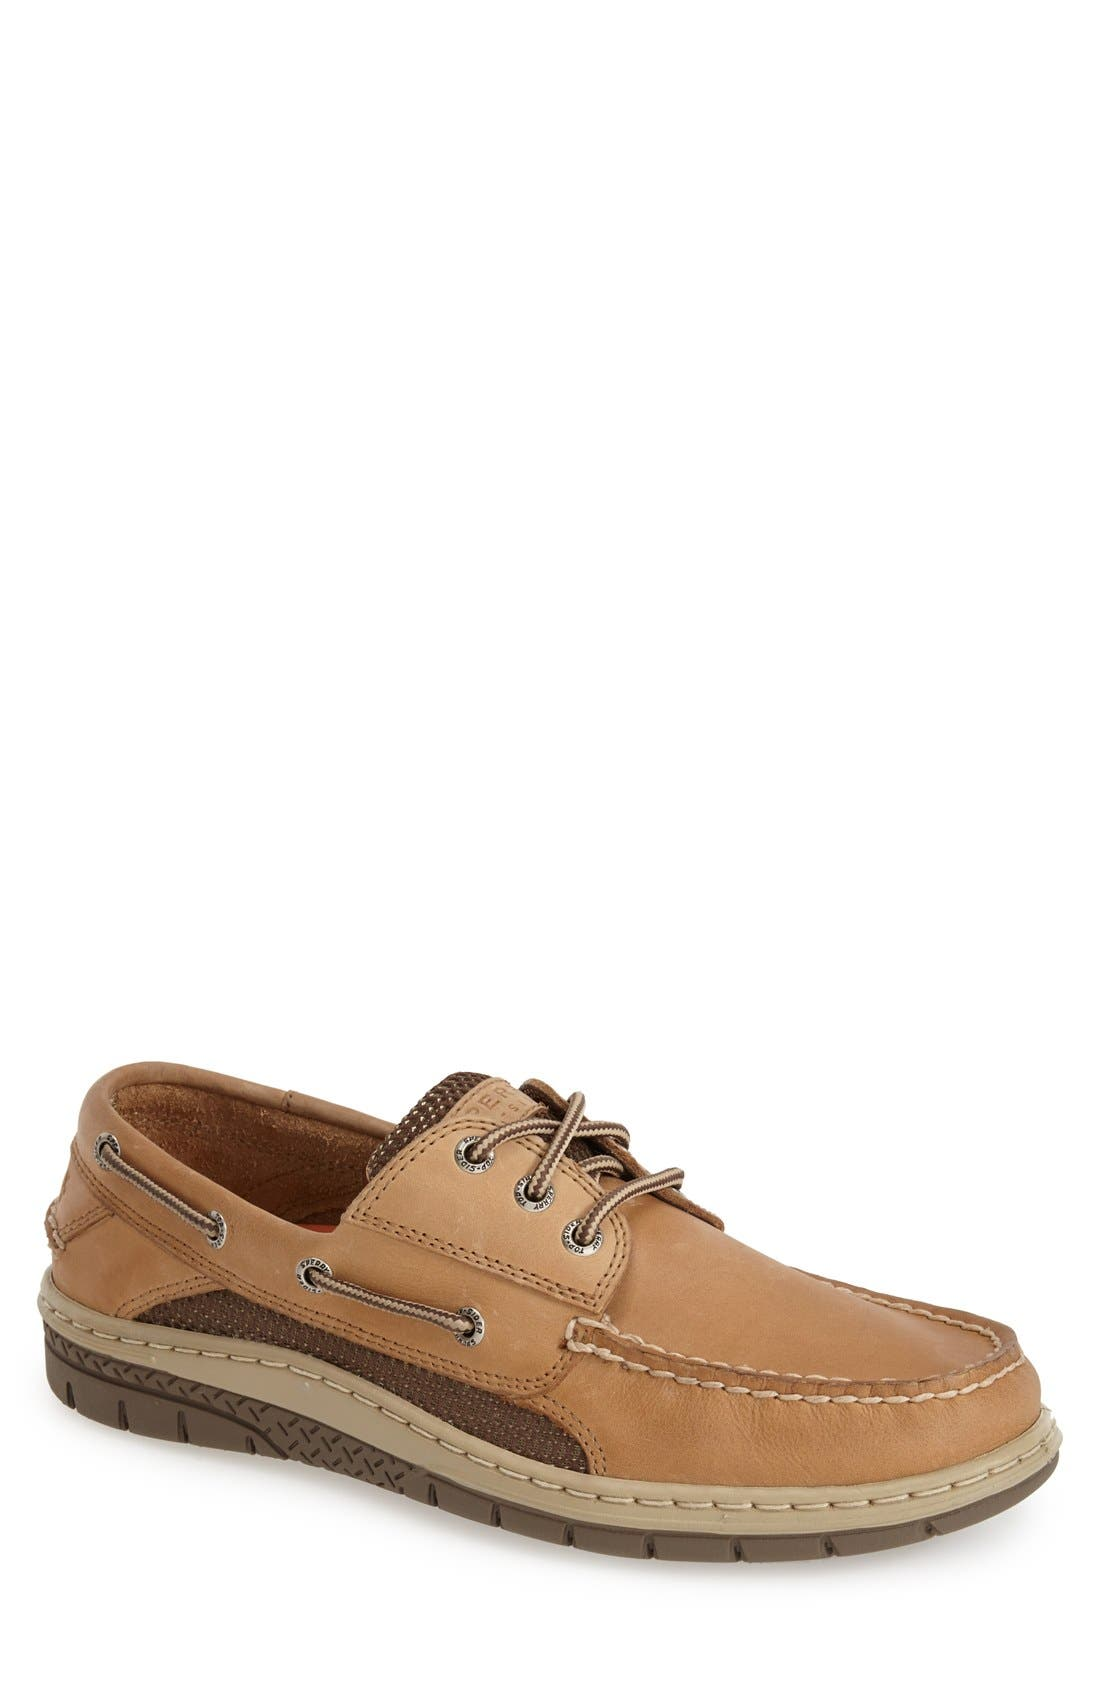 'Billfish Ultralite' Boat Shoe,                             Main thumbnail 14, color,